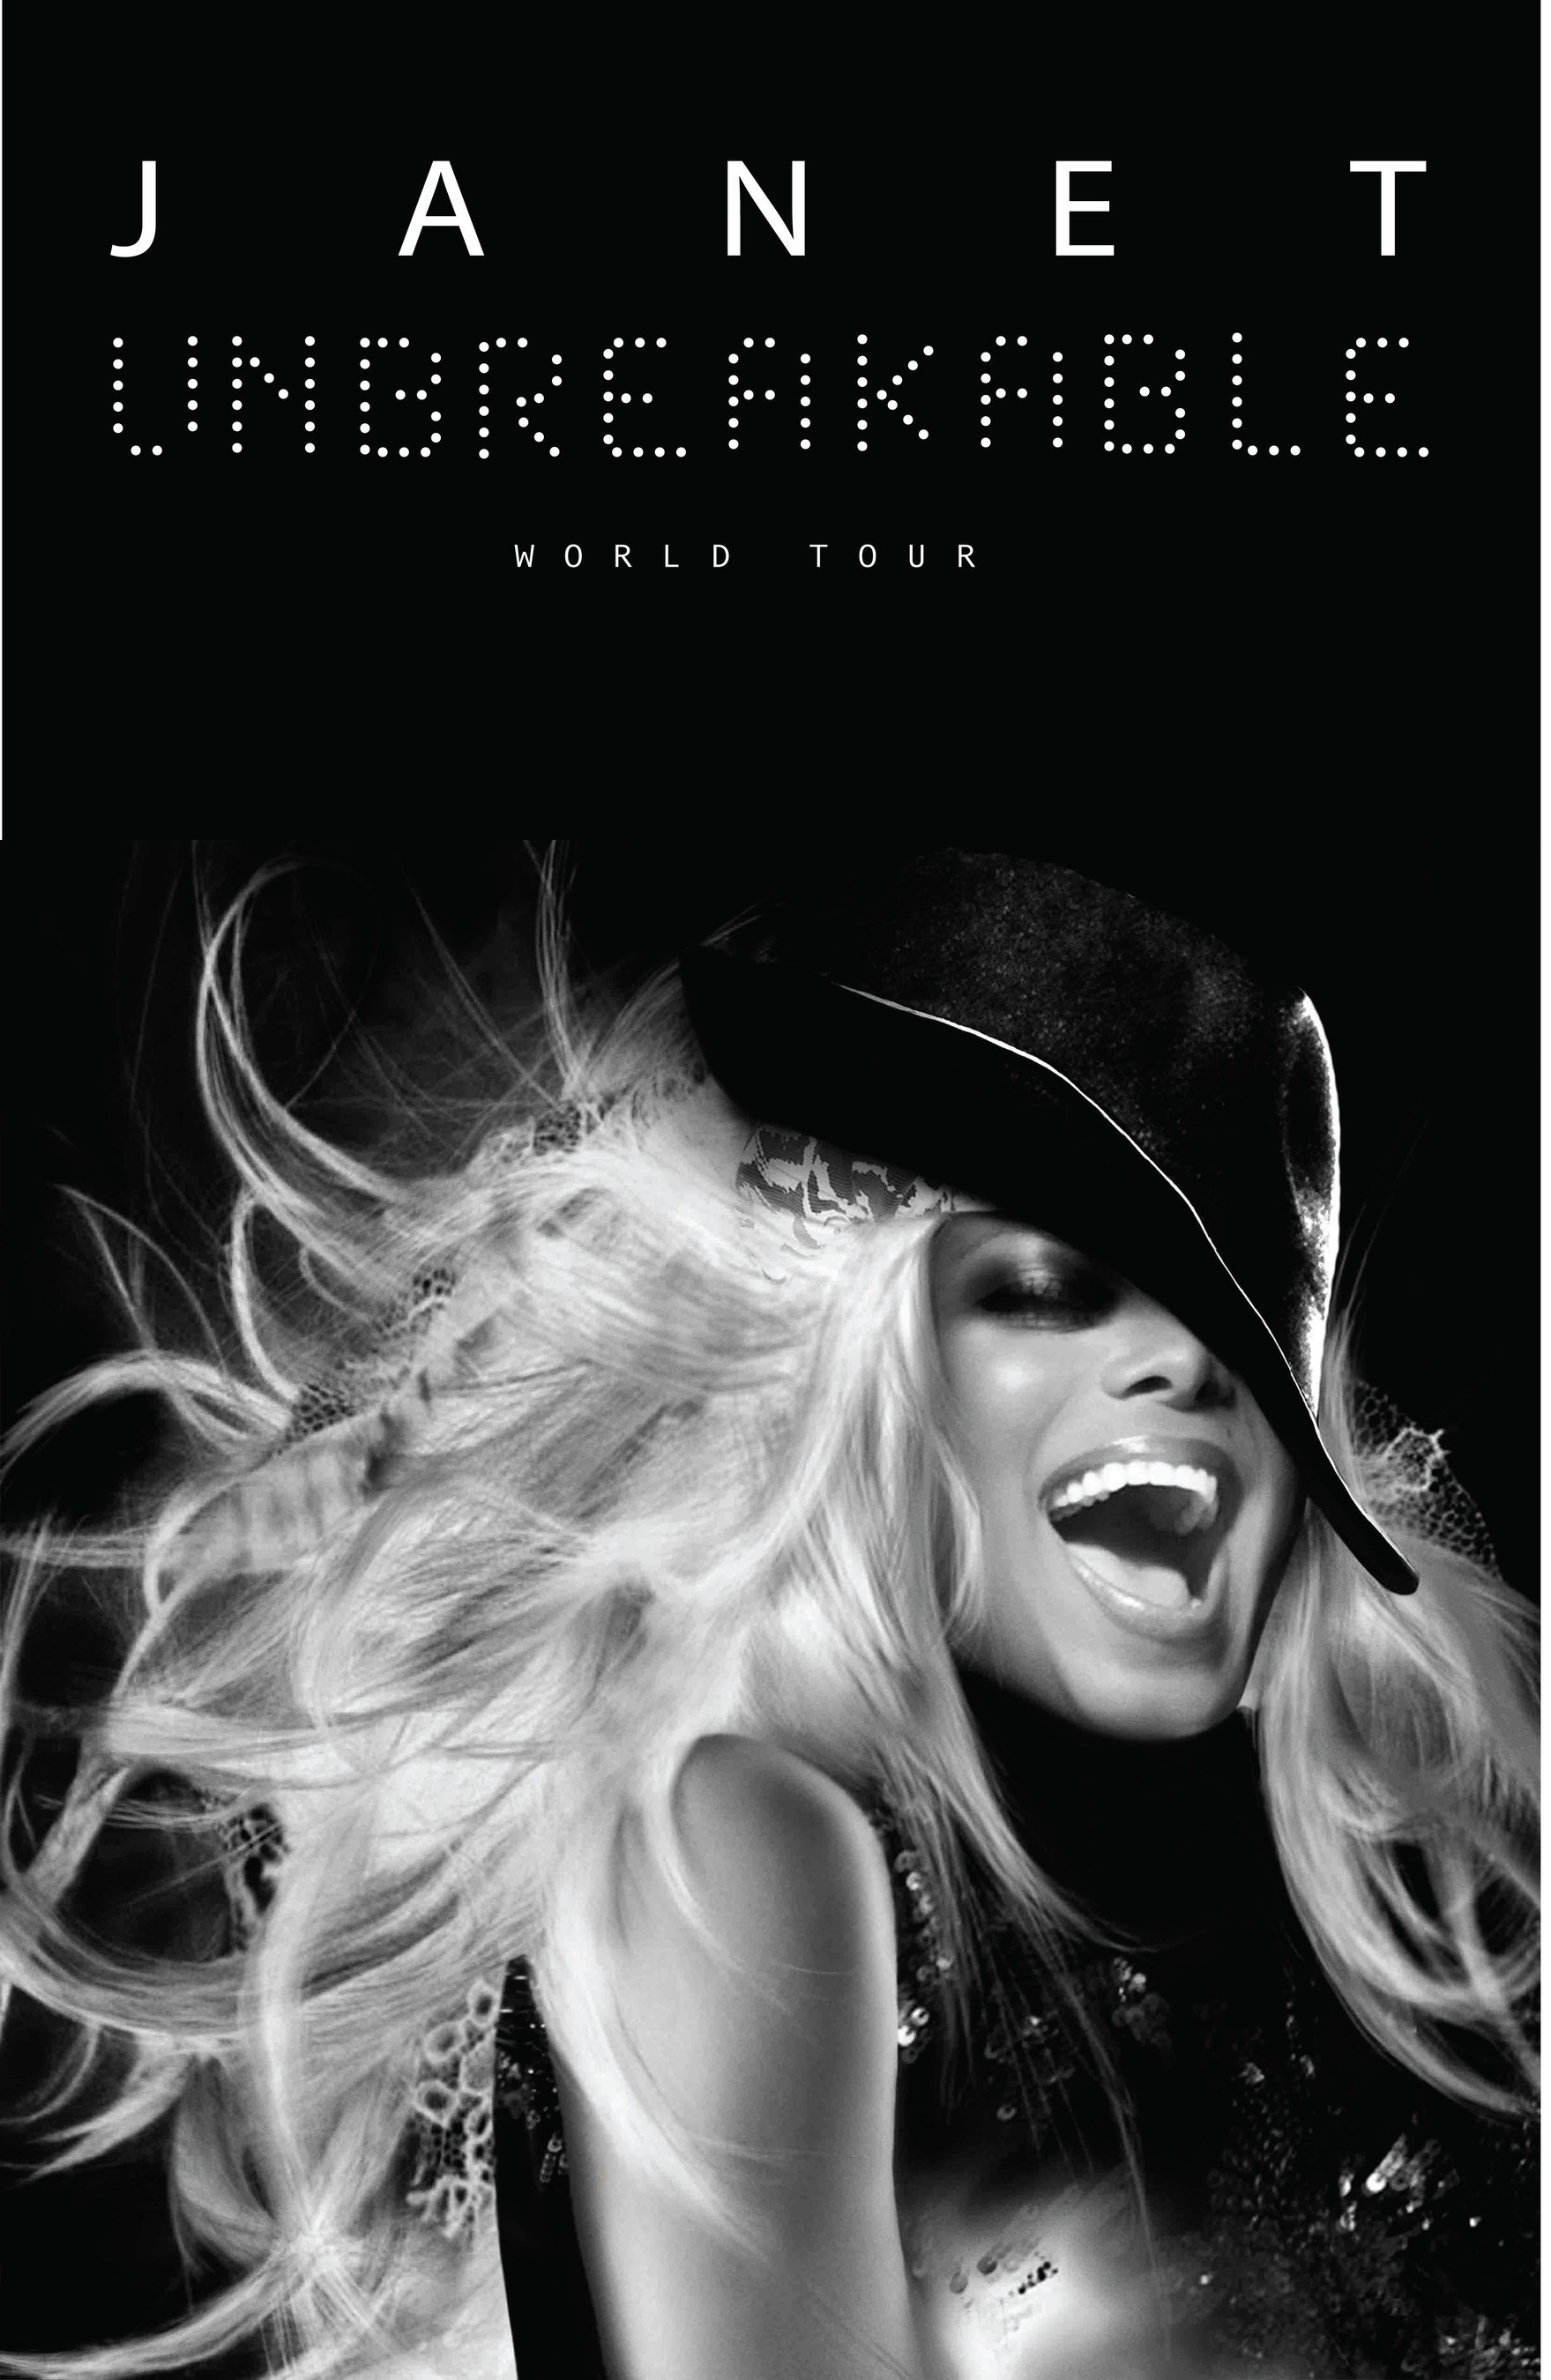 Janet Jackson's 'NO SLEEEP' Keeps On Climbing The Charts And Waking Up The World, Claiming #5 Spot On The Urban AC Chart Only Three Weeks After Its Debut